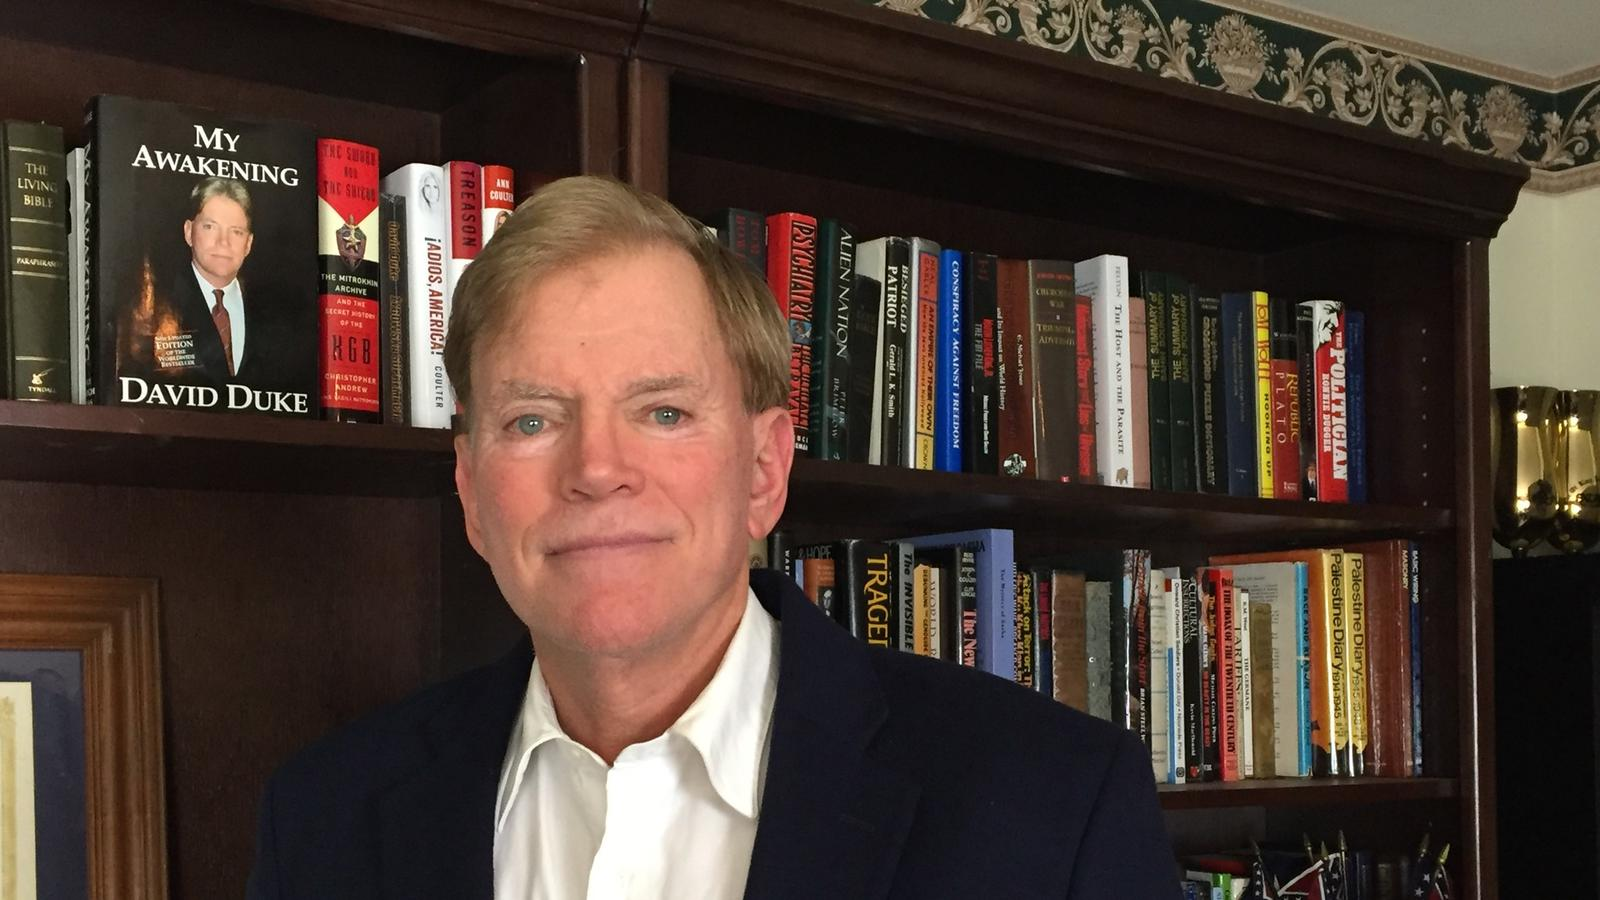 Trump's rise draws white supremacists into political mainstream: 'I am winning,' says David Duke